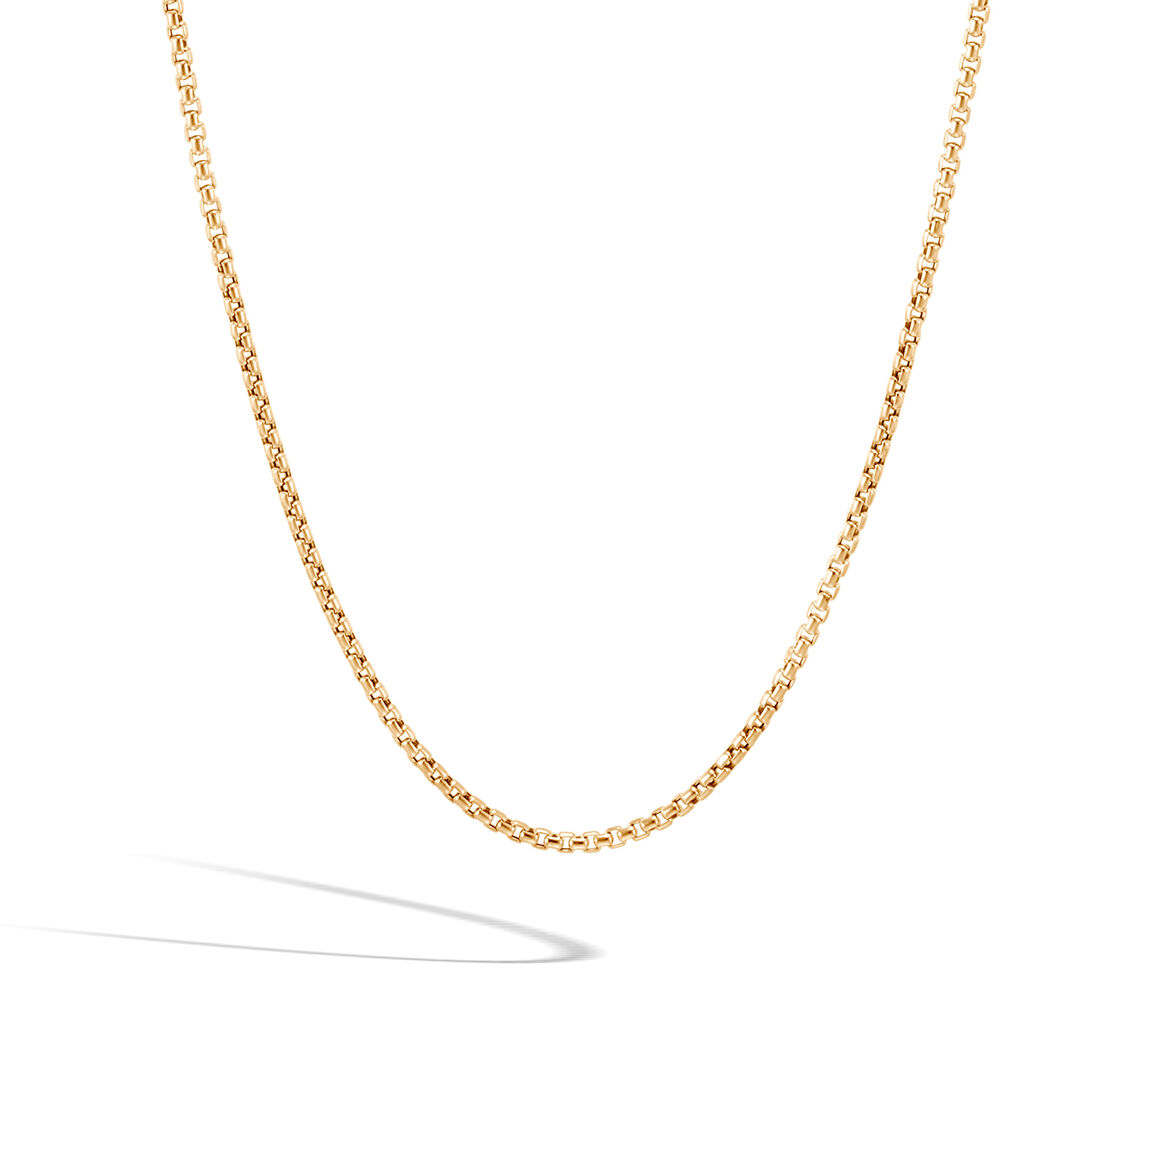 2.5MM Box Chain Necklace in 18K Gold